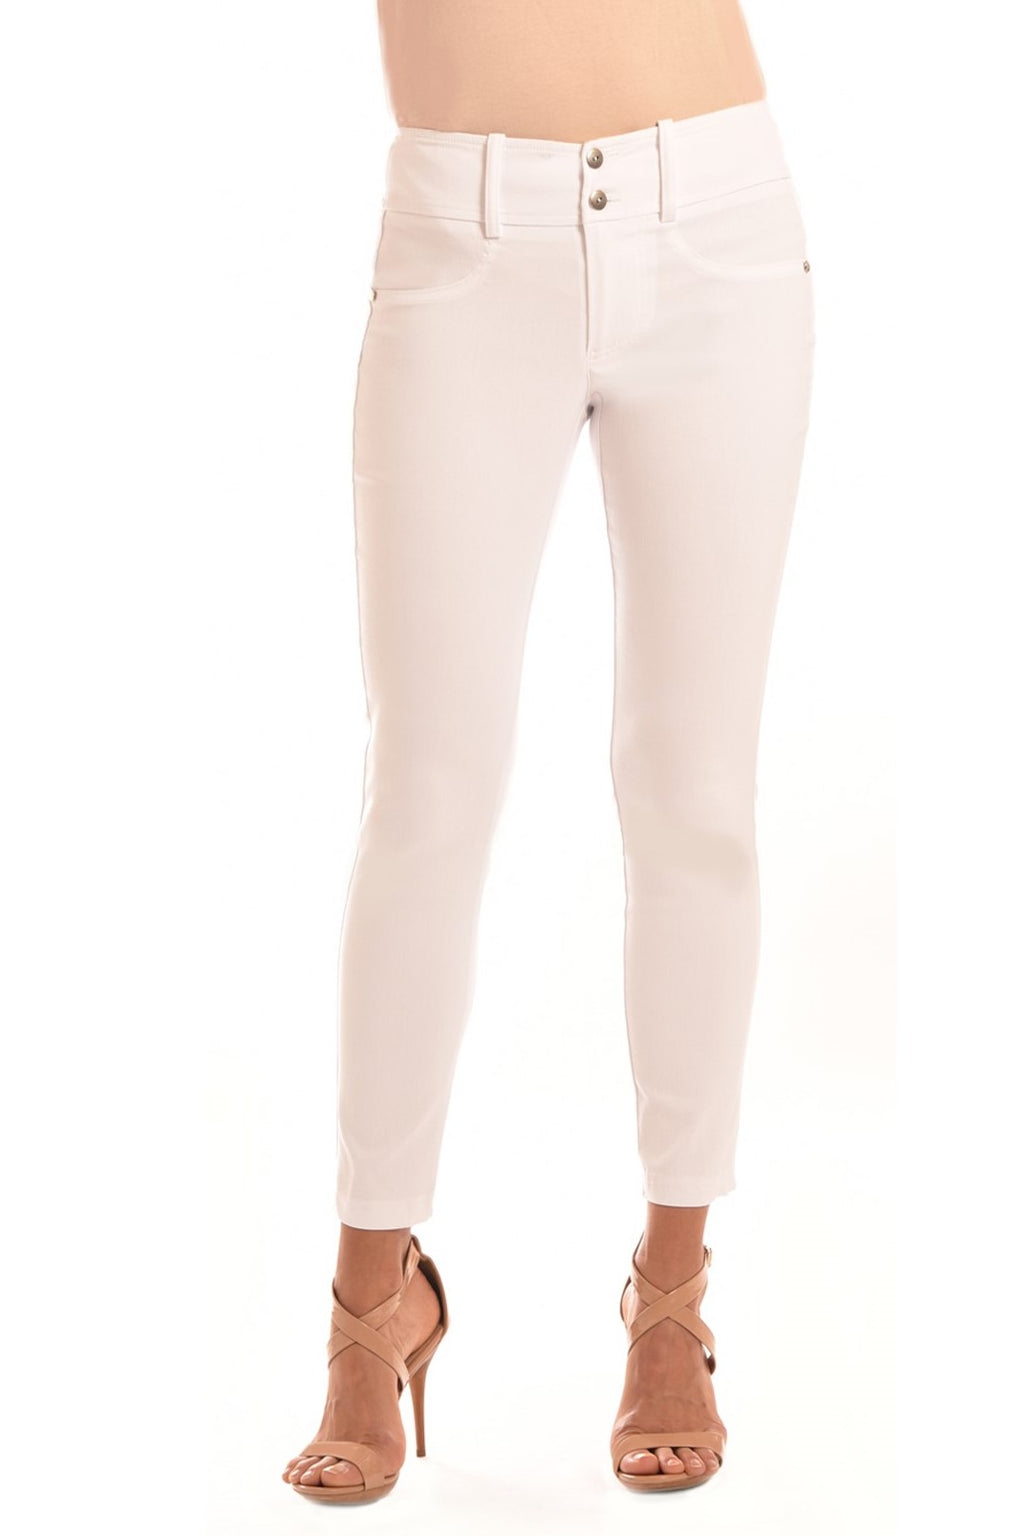 "Skinny 9"" Rise Cropped Pant"